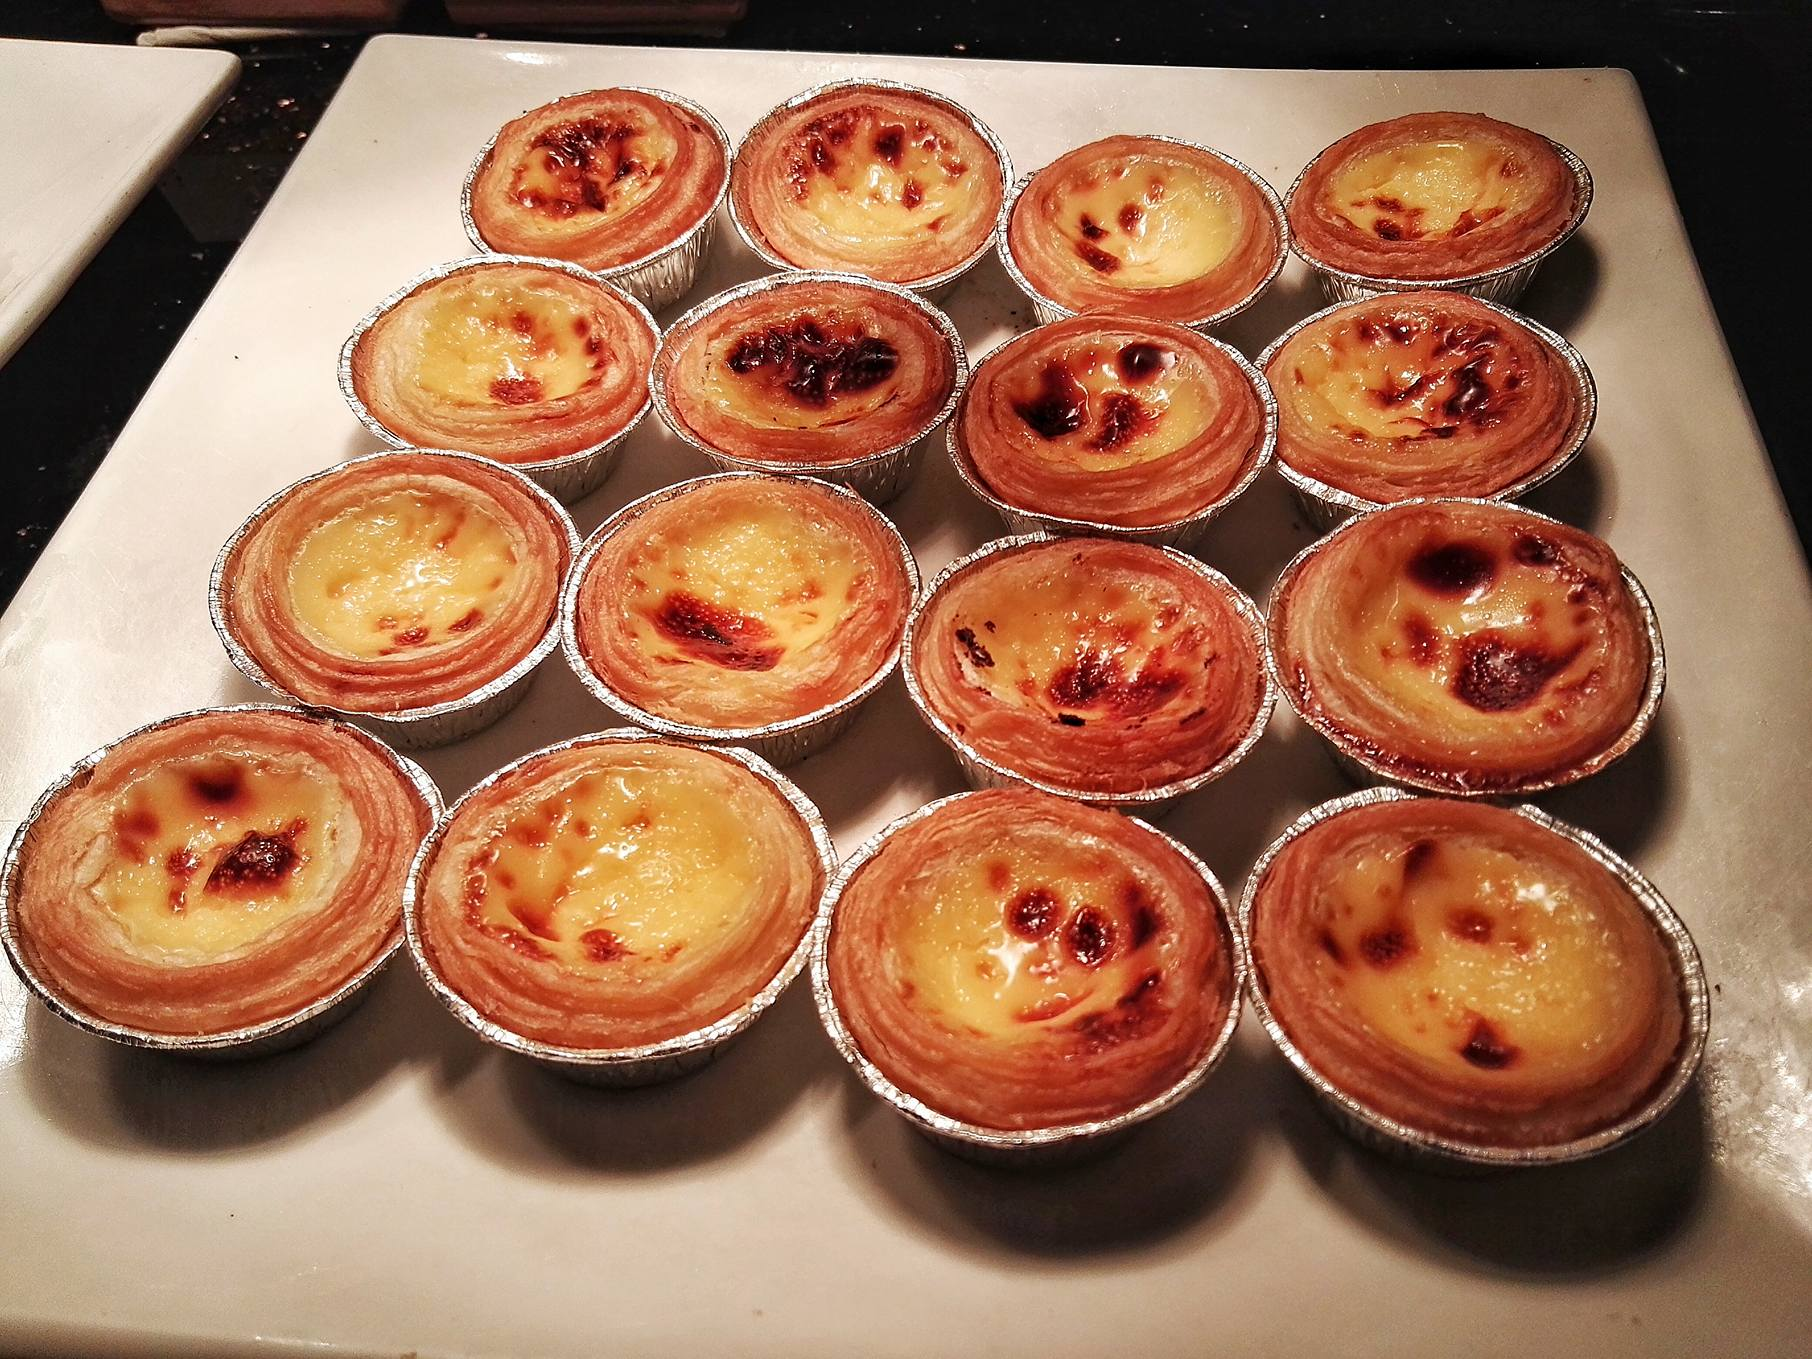 Mini Portuguese Egg Tarts at Cathay Pacific Business Class Lounge- The Bridge- Hong Kong Airport